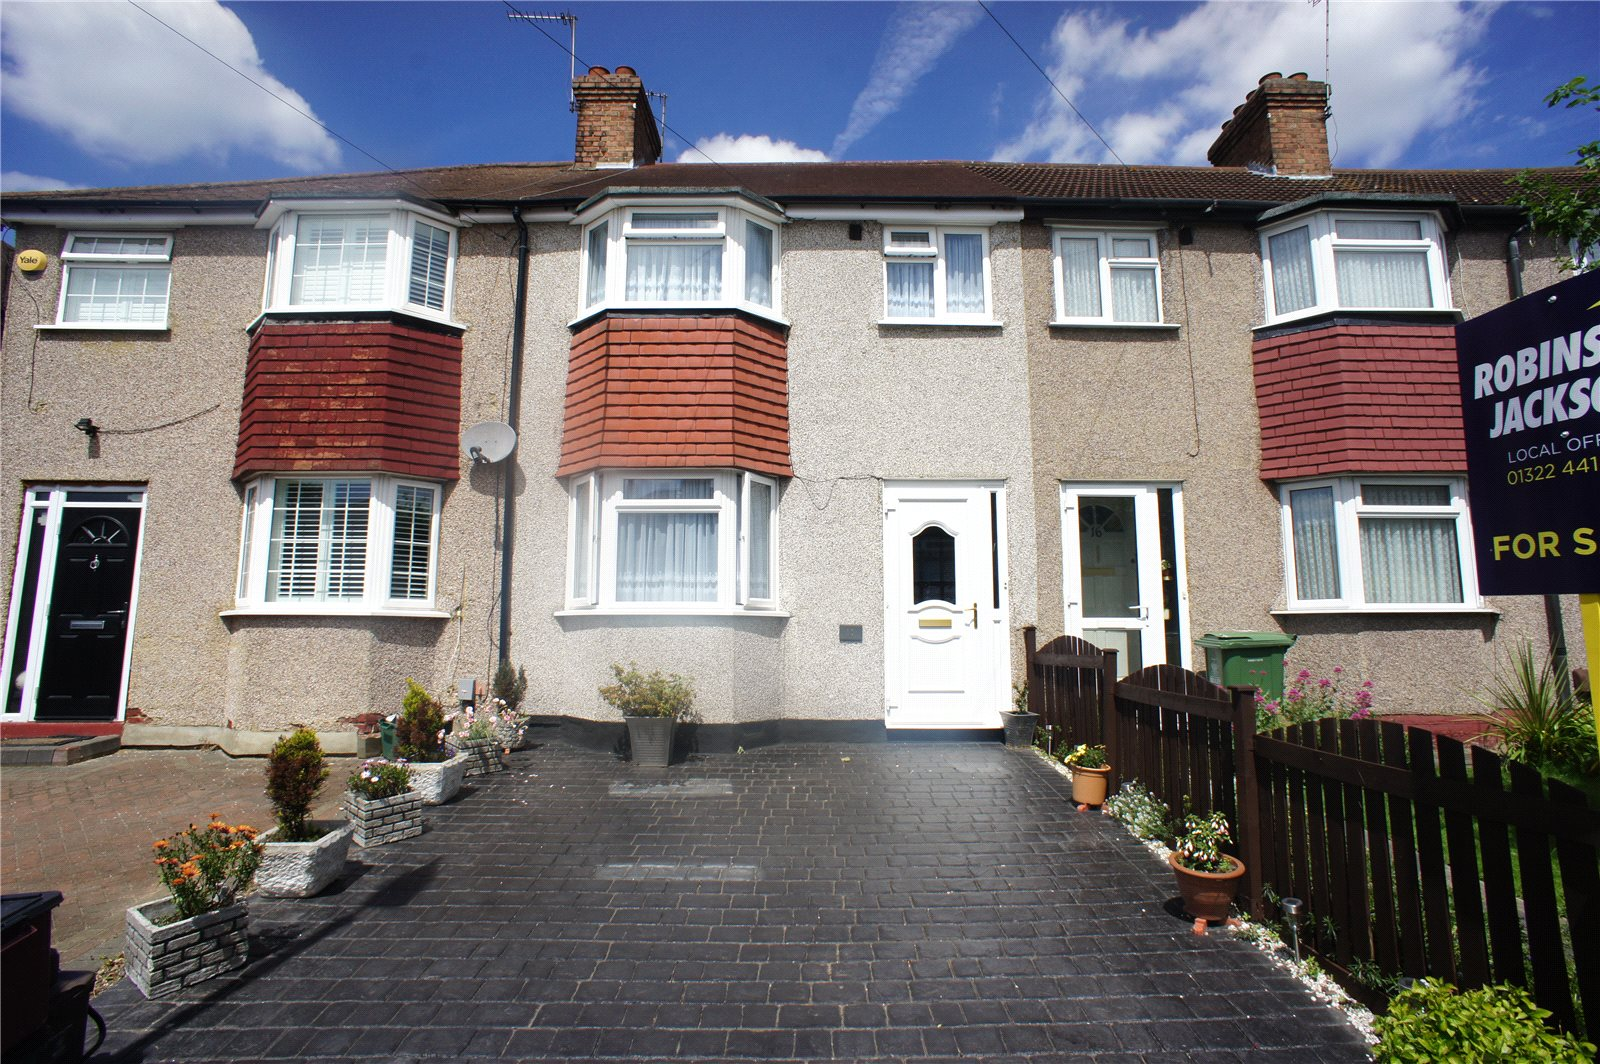 3 Bedroom House For Sale Clovelly Road Bexleyheath Kent